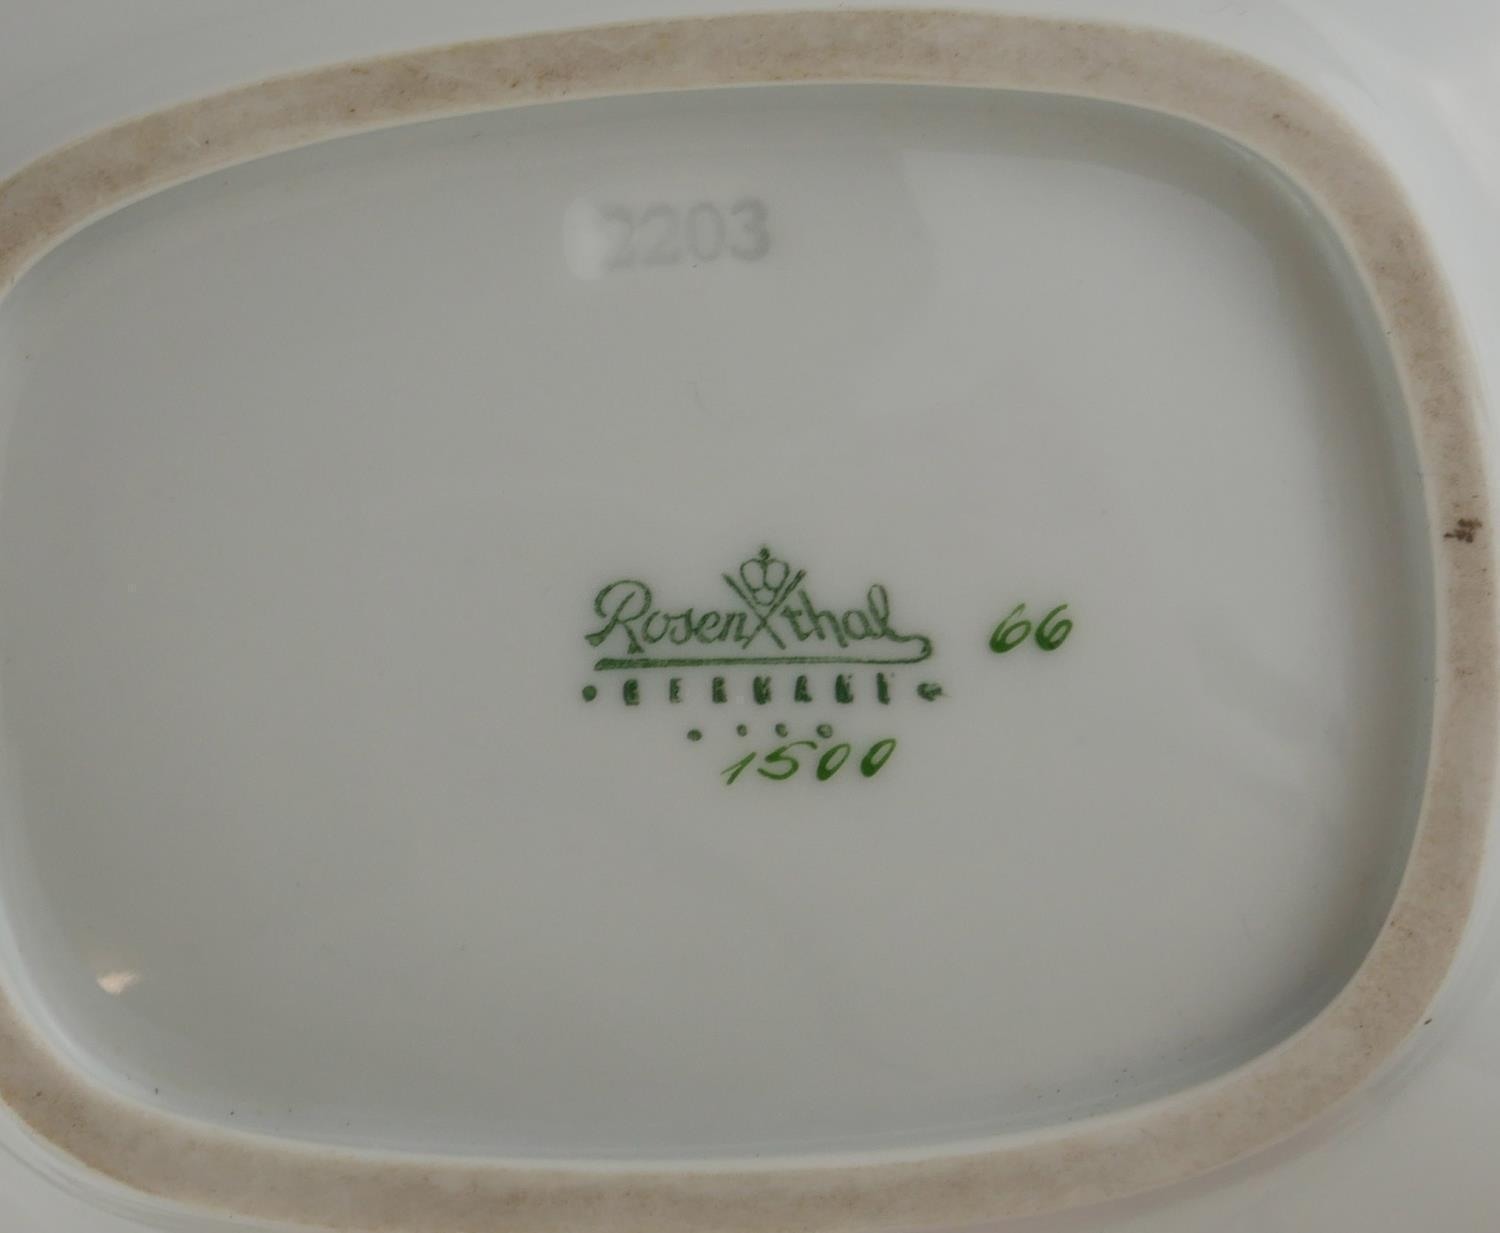 RAYMOND REYNET FOR ROSENTHAL, AN AMUSING PORCELAIN NOVELTY TRINKET BOX AND COVER, CIRCA 1960 - Image 9 of 9